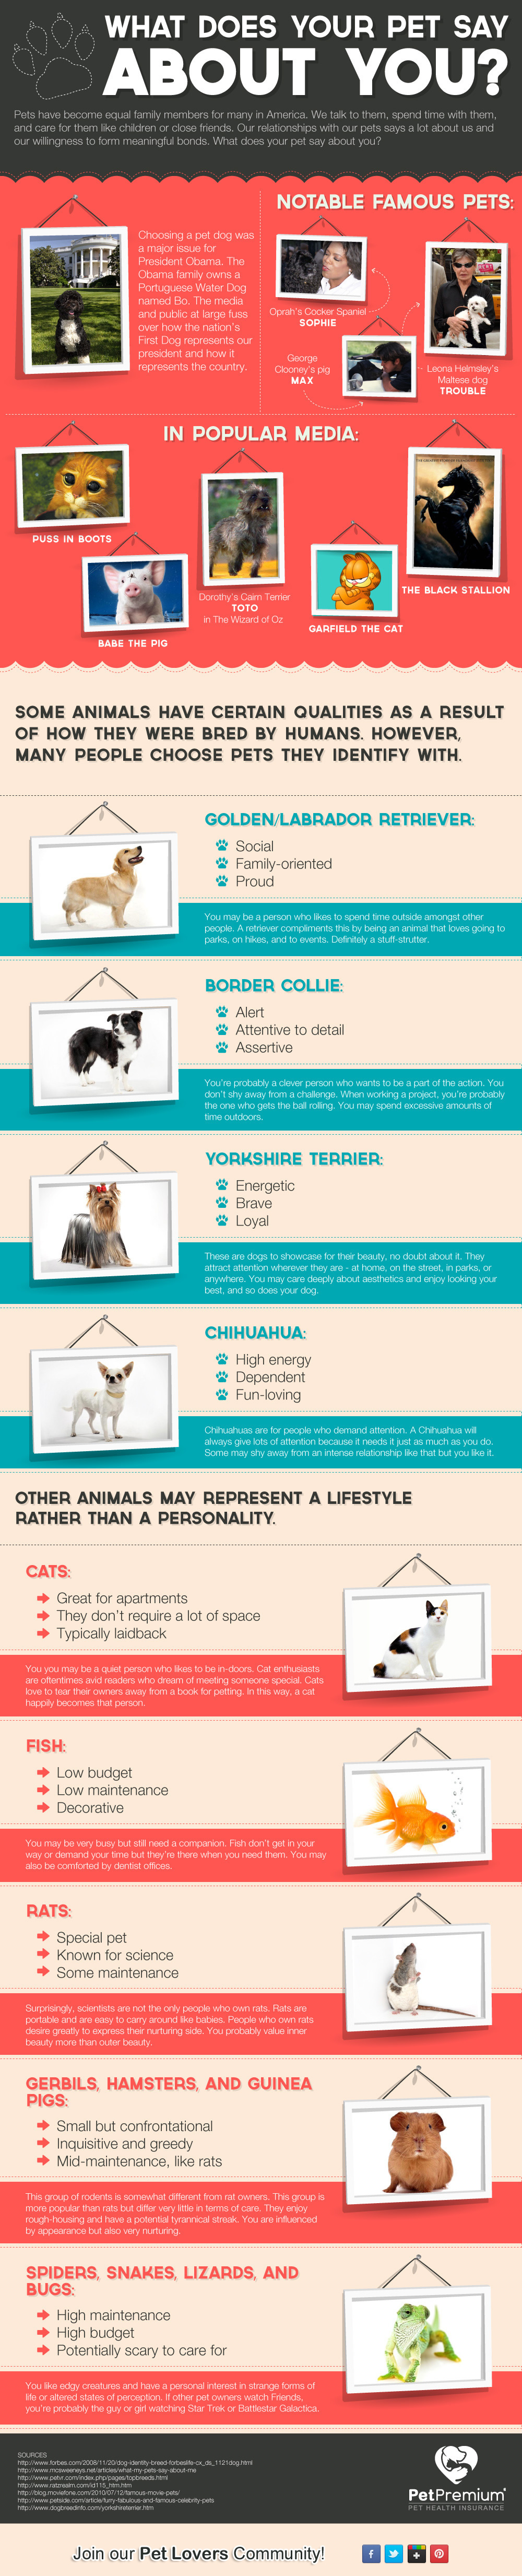 What Does Your Pet Say About You? - Infographic